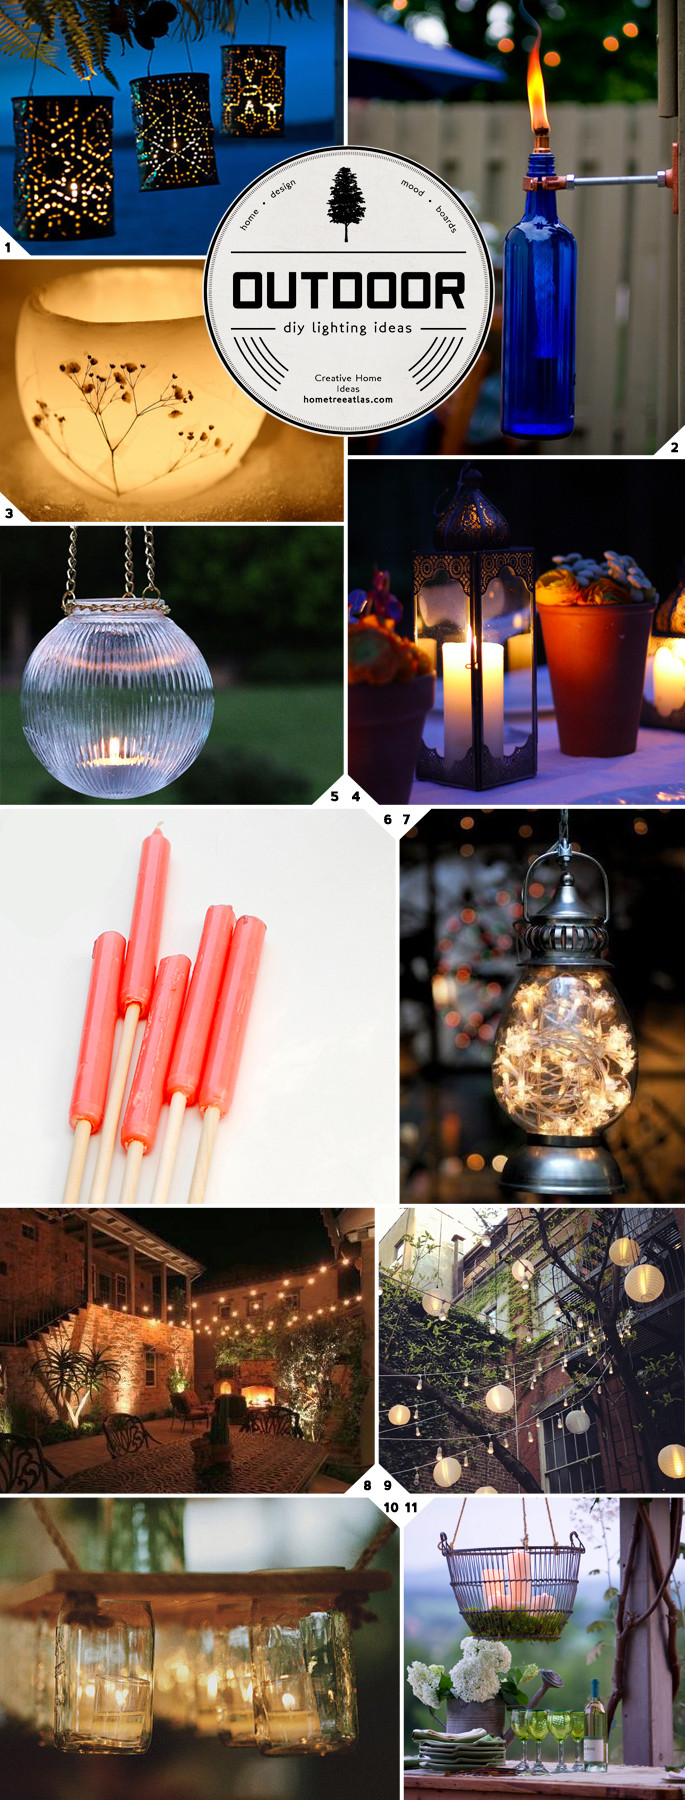 Best ideas about DIY Outdoor Lighting Ideas . Save or Pin Getting Crafty DIY Outdoor Lighting Ideas Now.